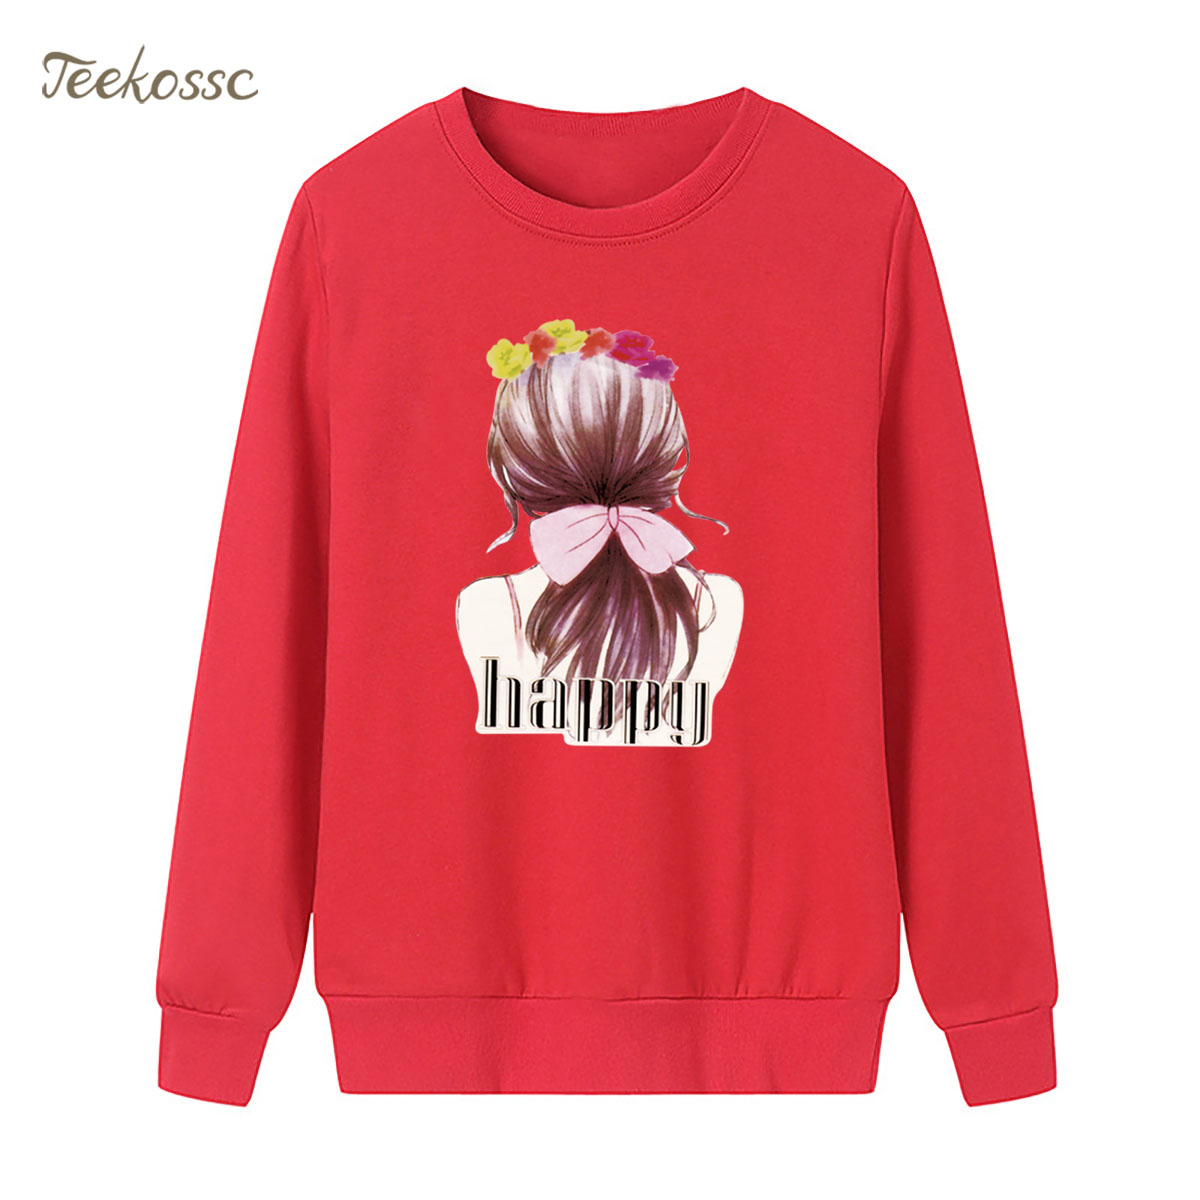 Beauty Back Happy Sweatshirt Red Casual Hoodie 2018 New Fashion Winter Autumn Women Lady Pullover Fleece Warm Loose Streetwear